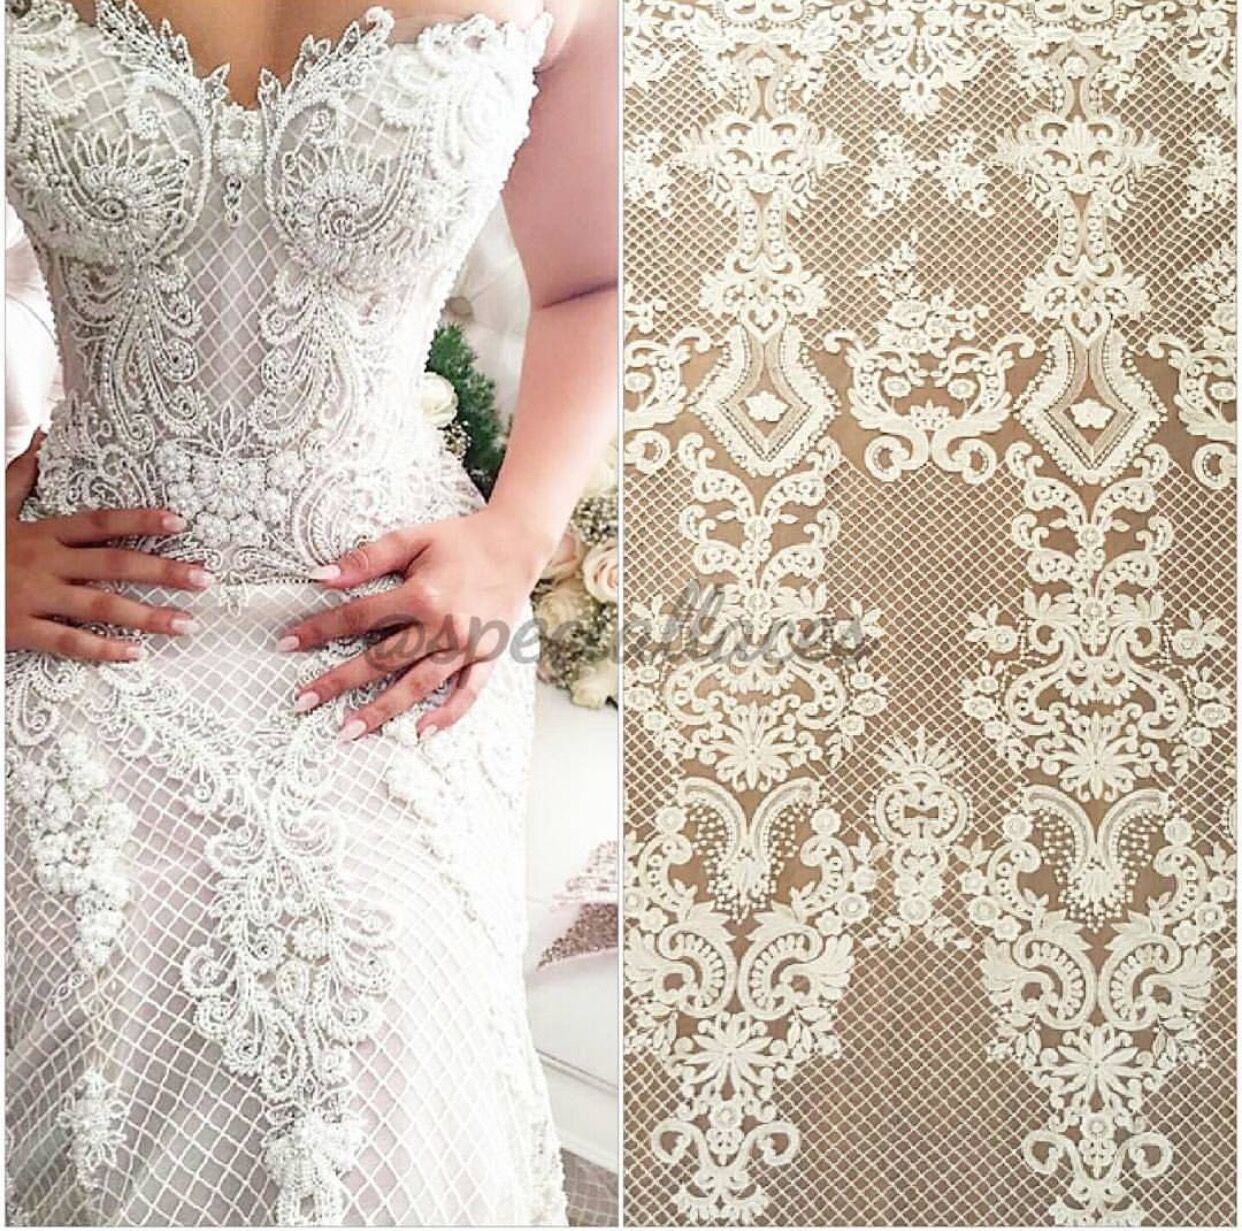 Fashion White Lace Fabric Cotton Embroidery Chantilly French Tulle Bridal By Annabellediy On Etsy